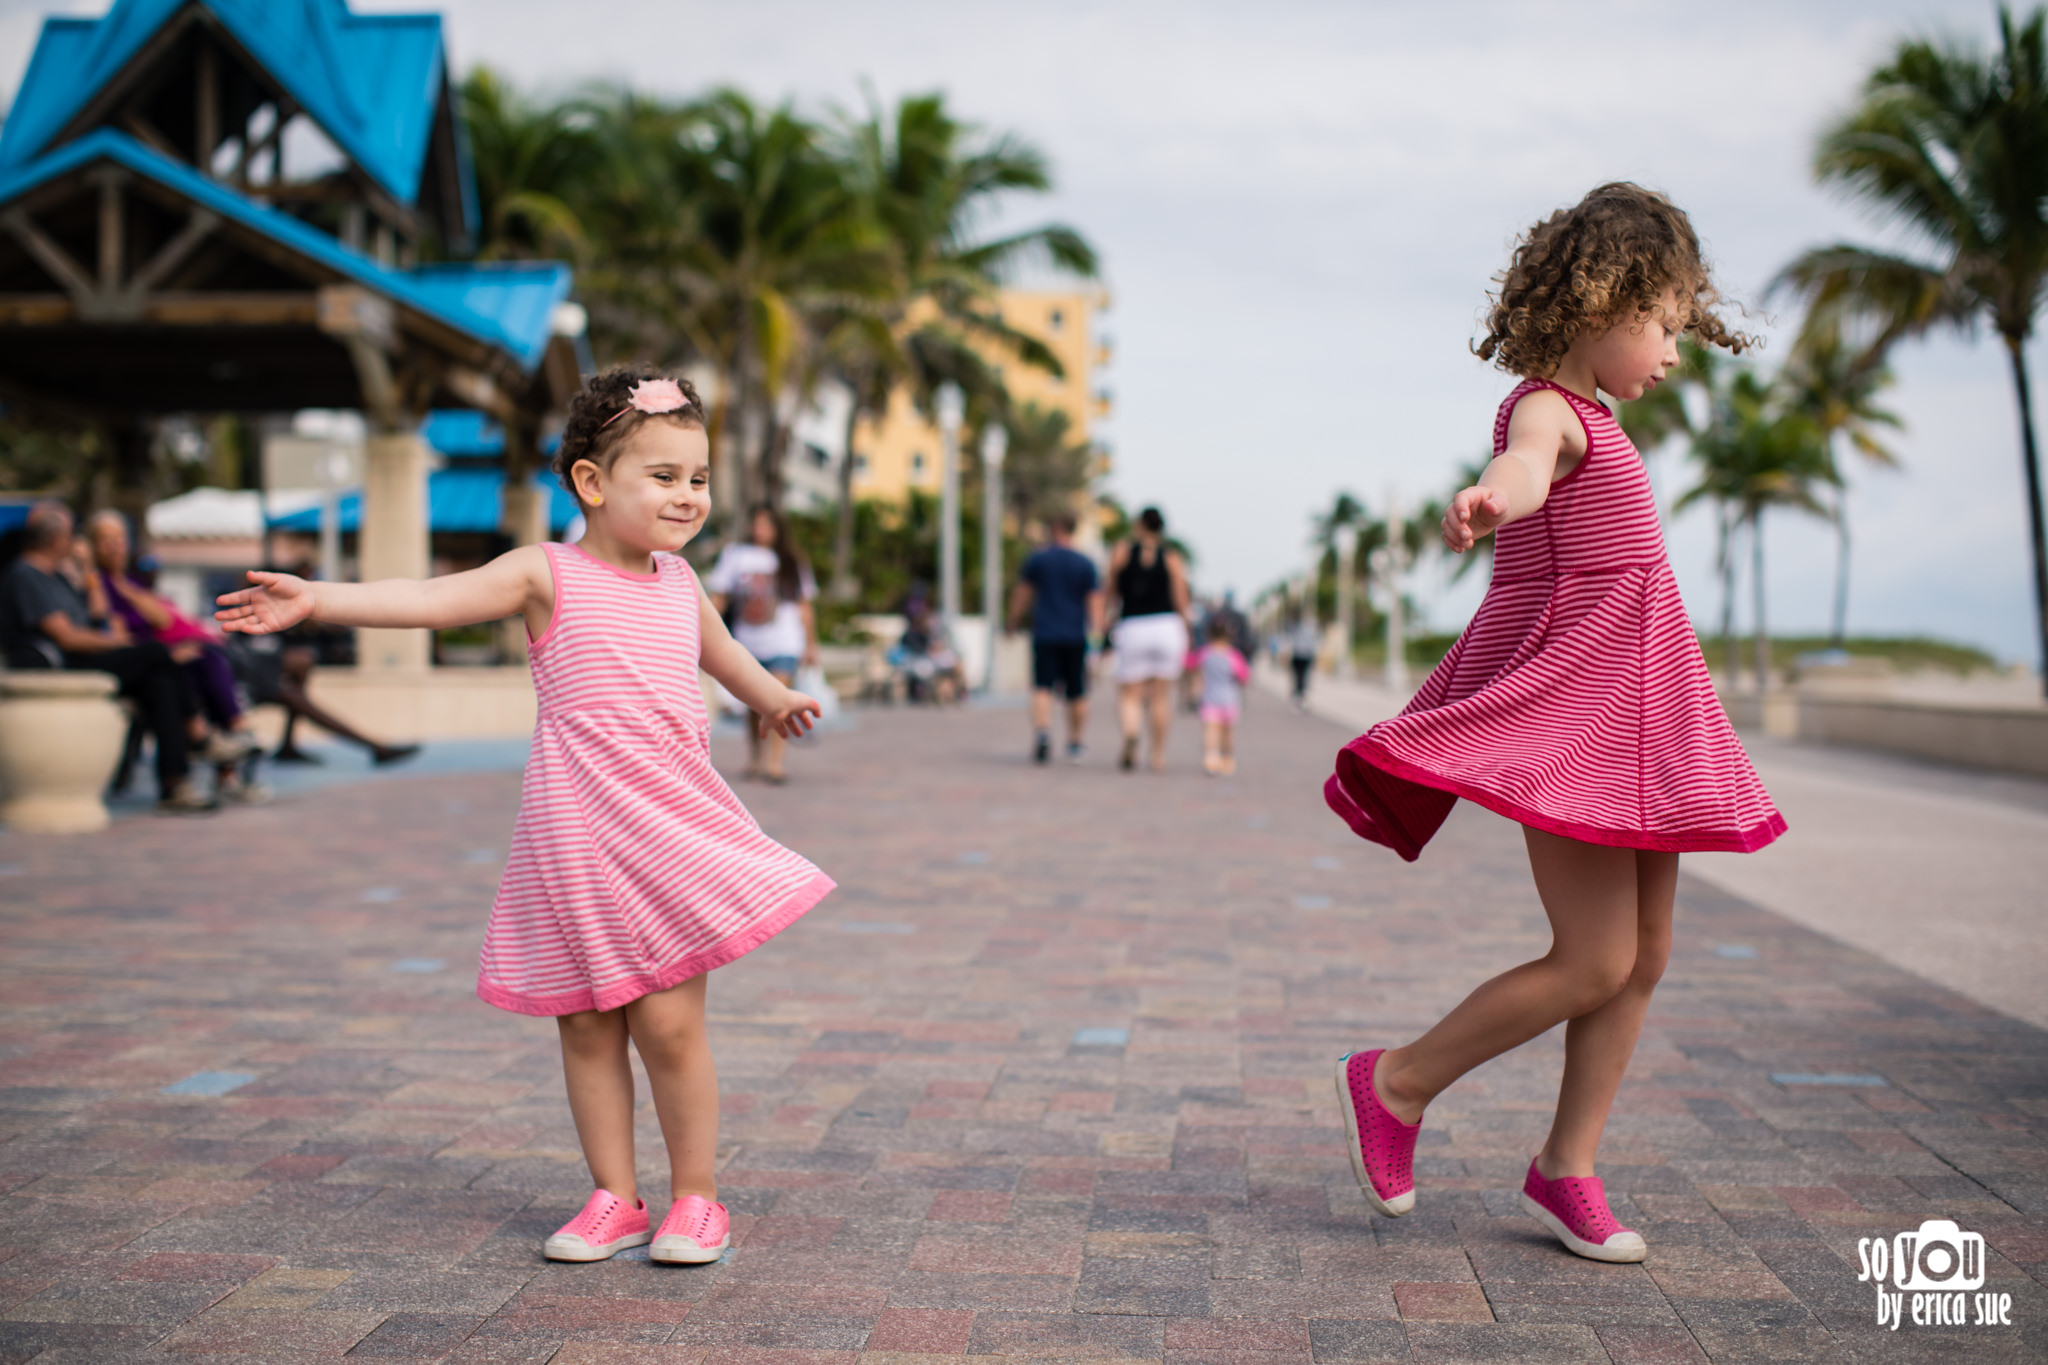 so-you-by-erica-sue-hollywood-beach-lifestyle-family-photographer-session-1427.JPG